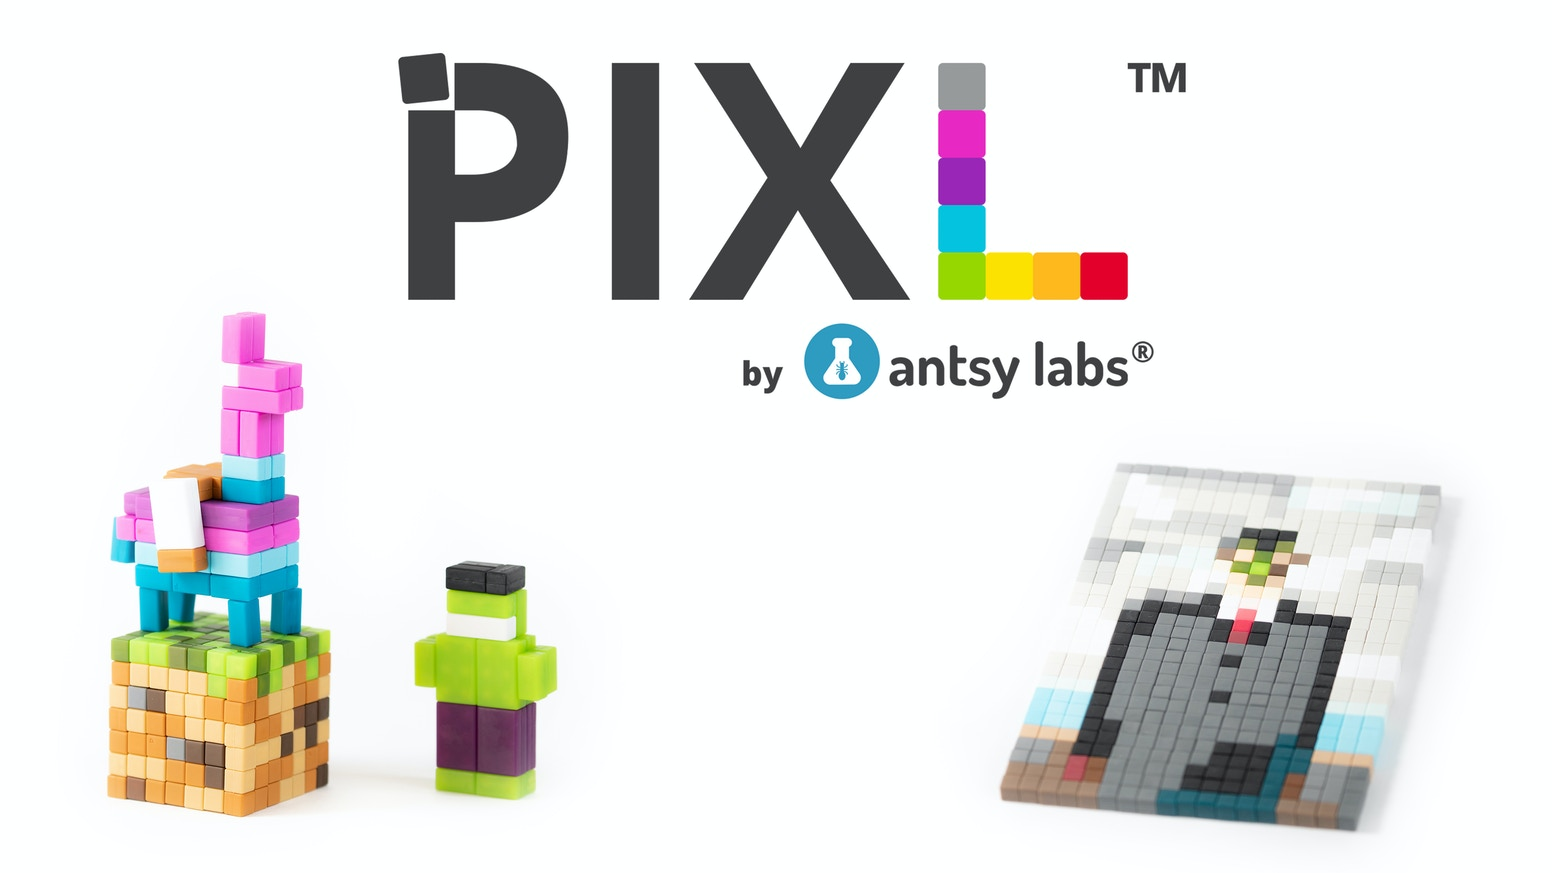 An infinitely expandable magnetic building system designed for 2D and 3D creations. Let your creative side out to play.